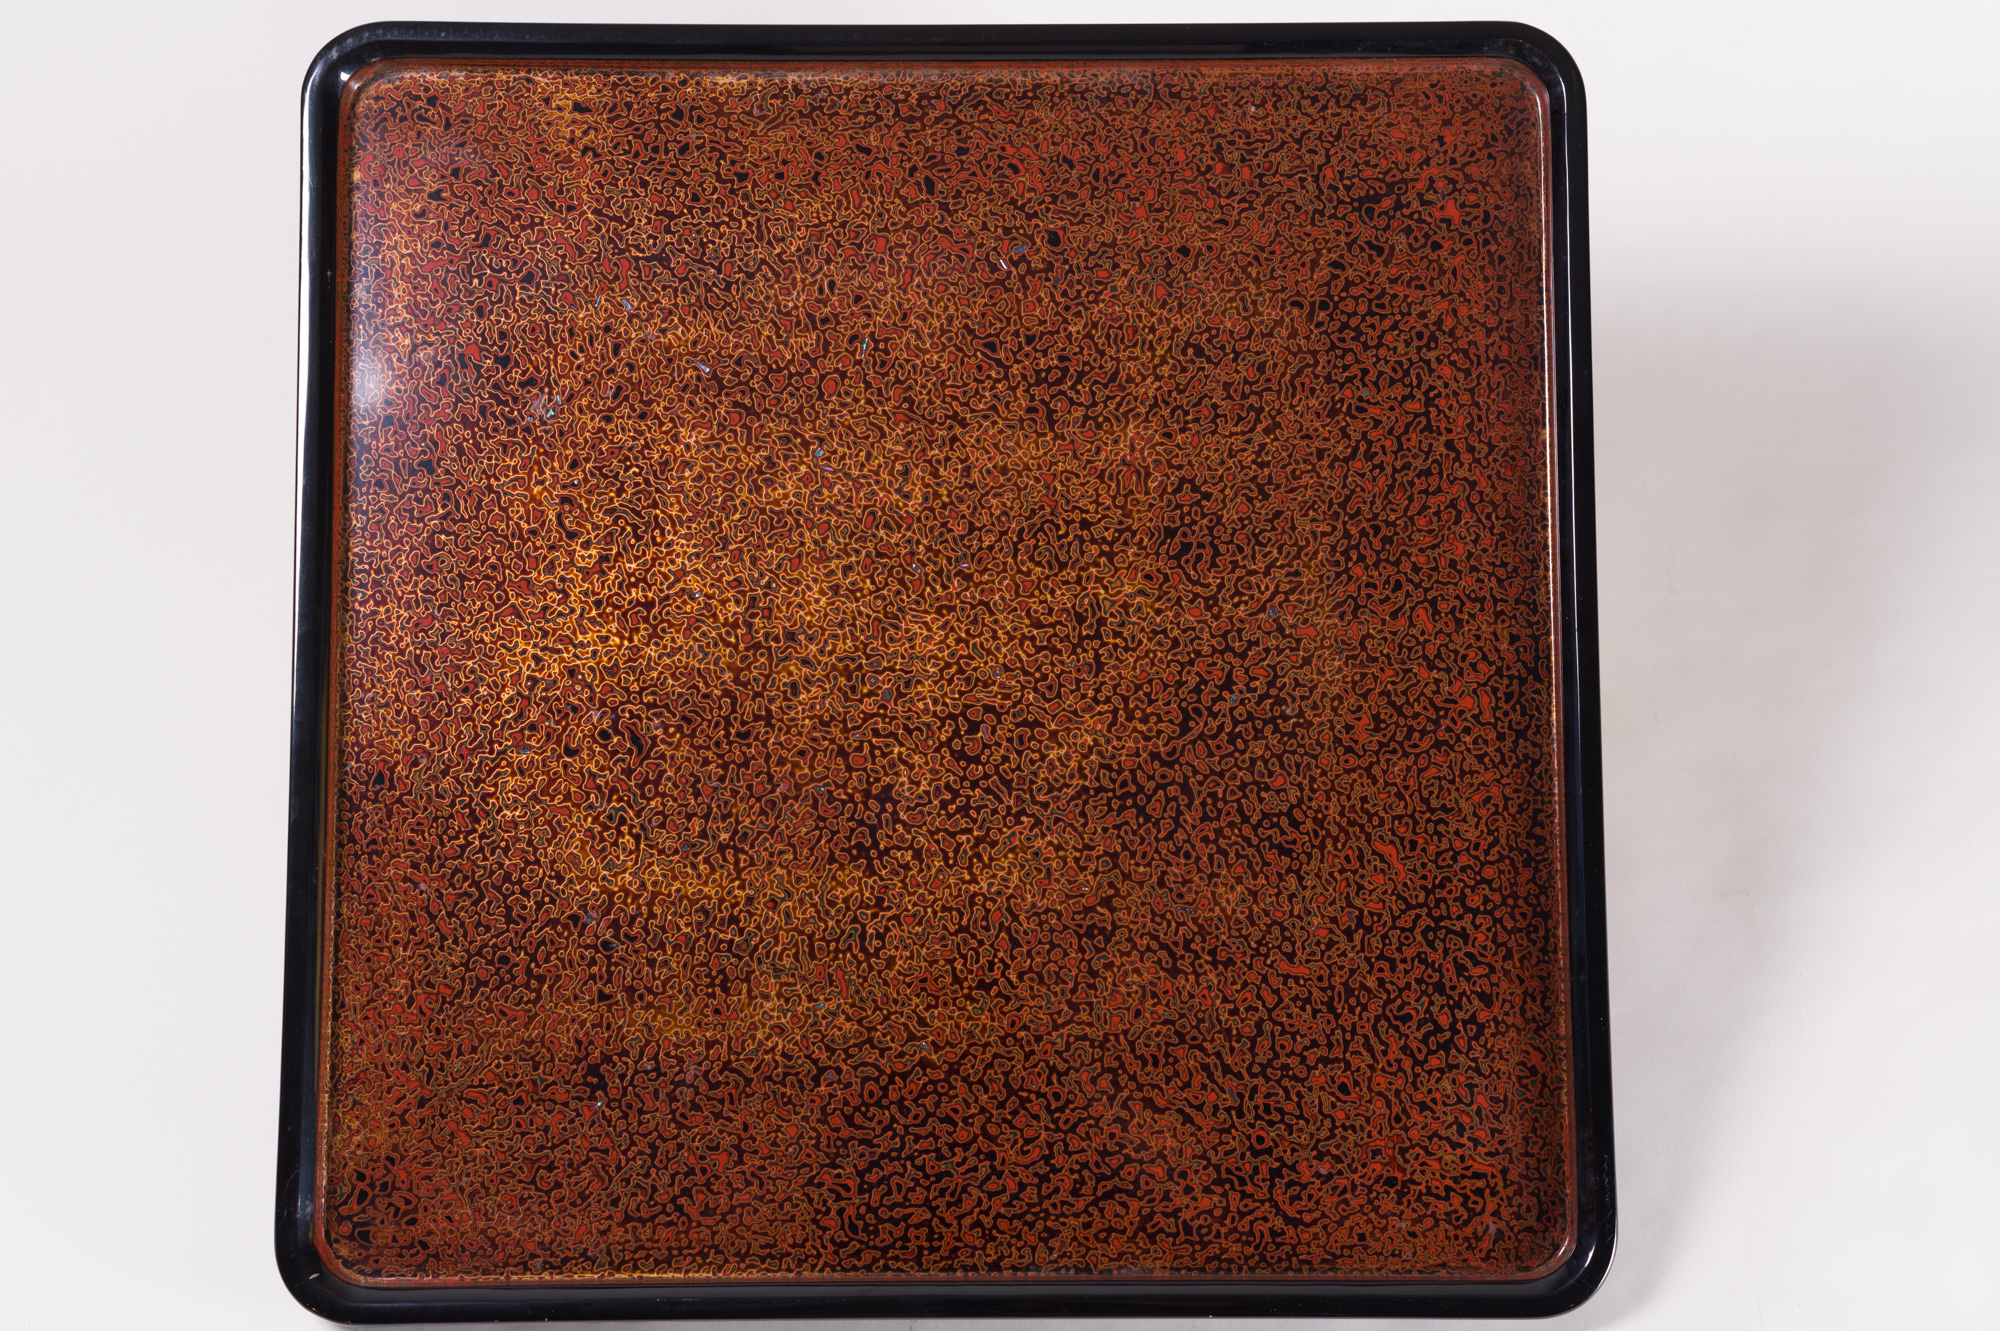 Japanese lacquer, Japanese antique, antique lacquer, Japanese antique lacquer, lacquer tray, antique tray, Japanese tray, wakasa, wakasa lacquer